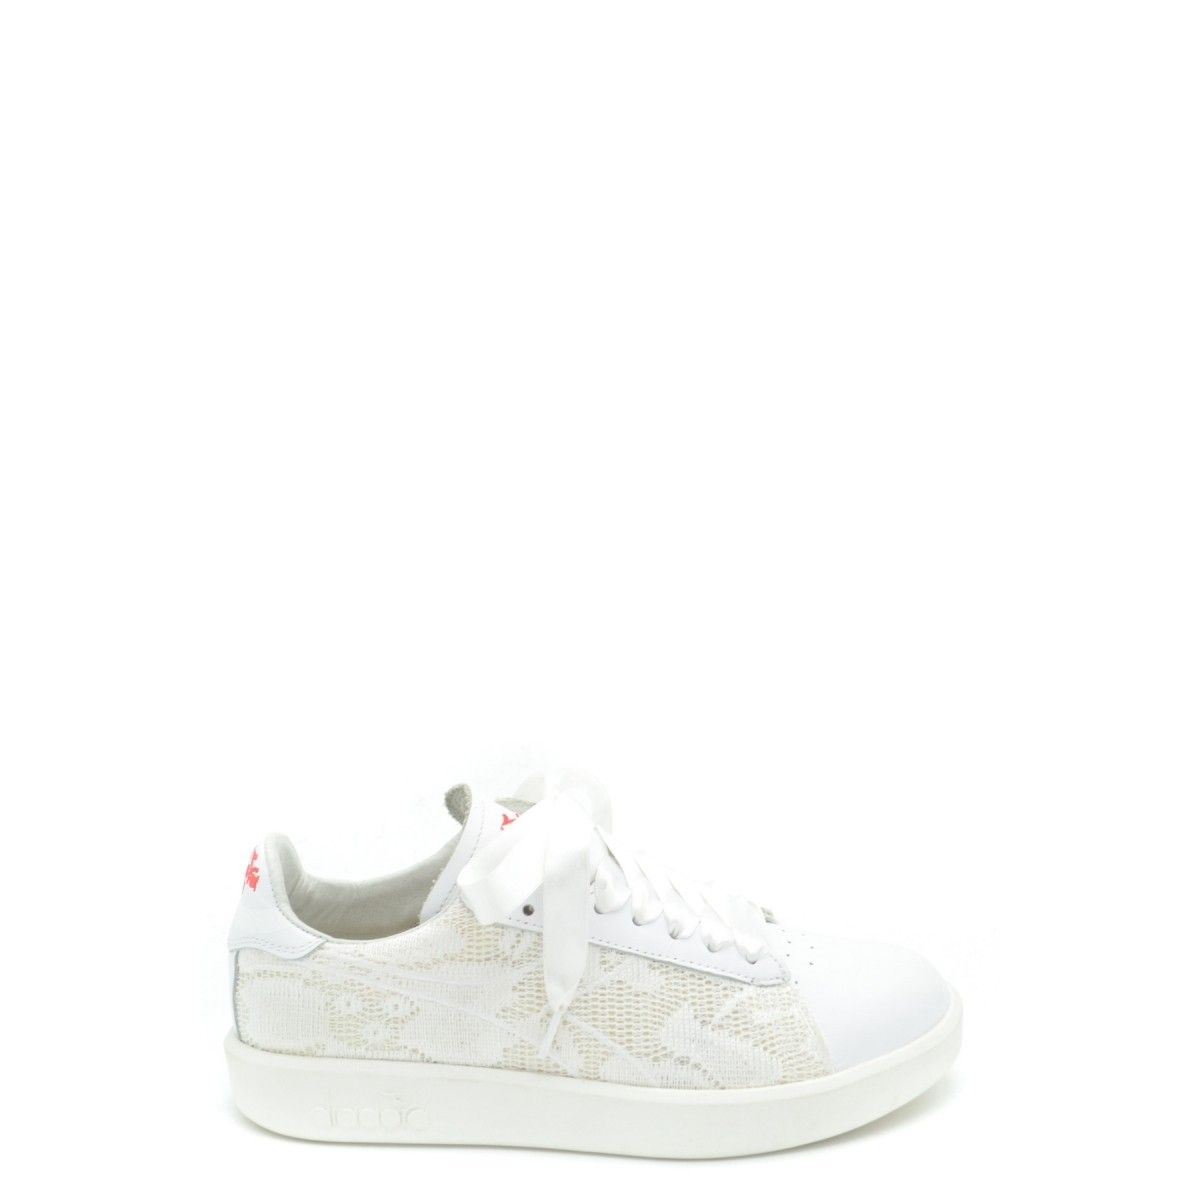 b158c4a9e7 Pin by GLAMTOP on Spring \ Summer 2019   White sneakers, Sneakers ...